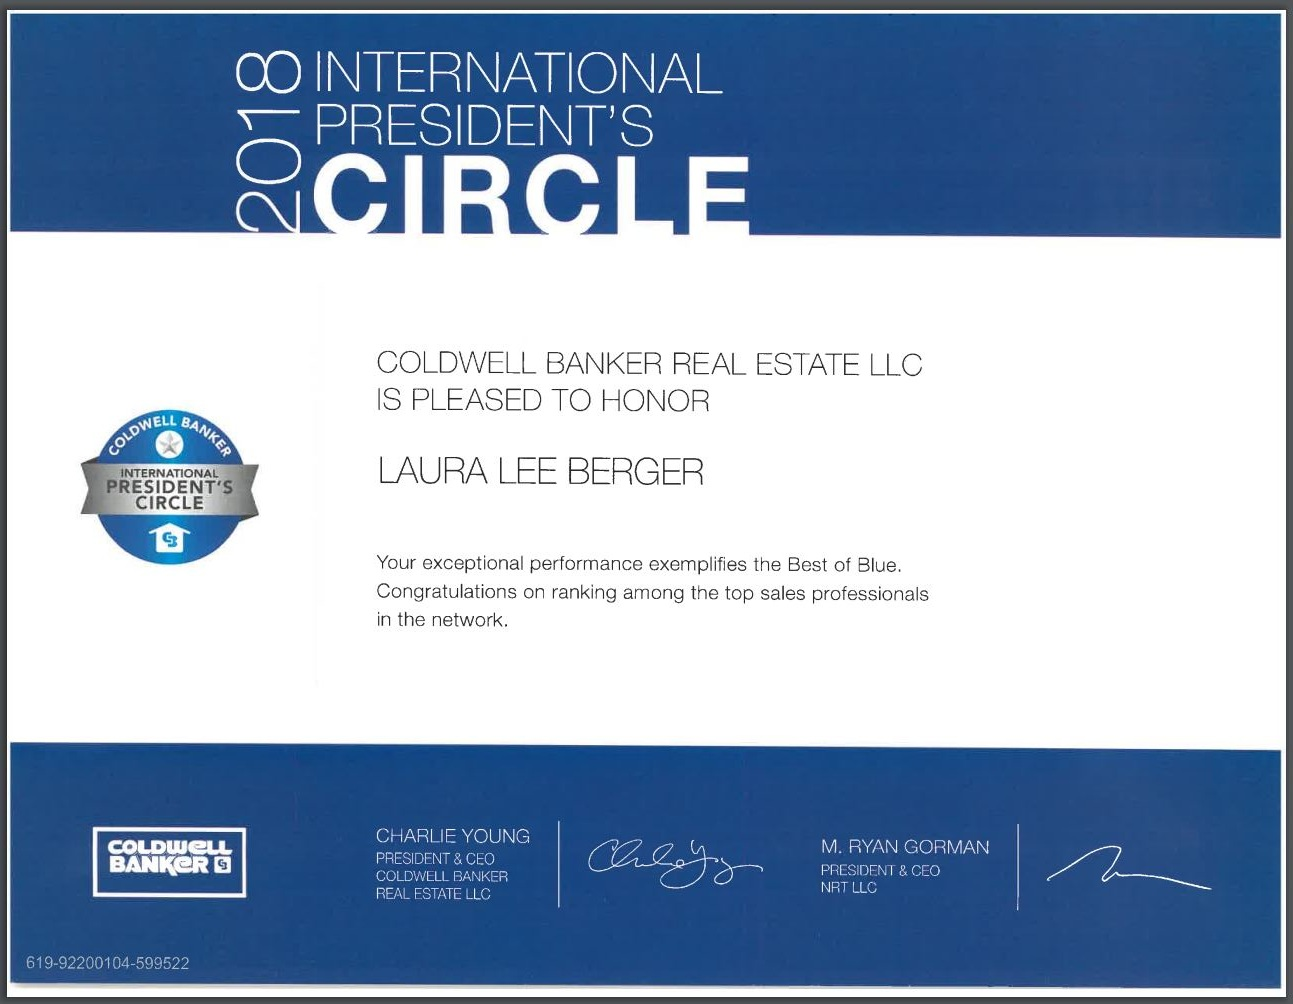 TOP RATED REALTOR® Twin Cities, International President's Circle, high performance, great reviews, Laura Lee Berger knowledgeable, trusted adviser, dedicated